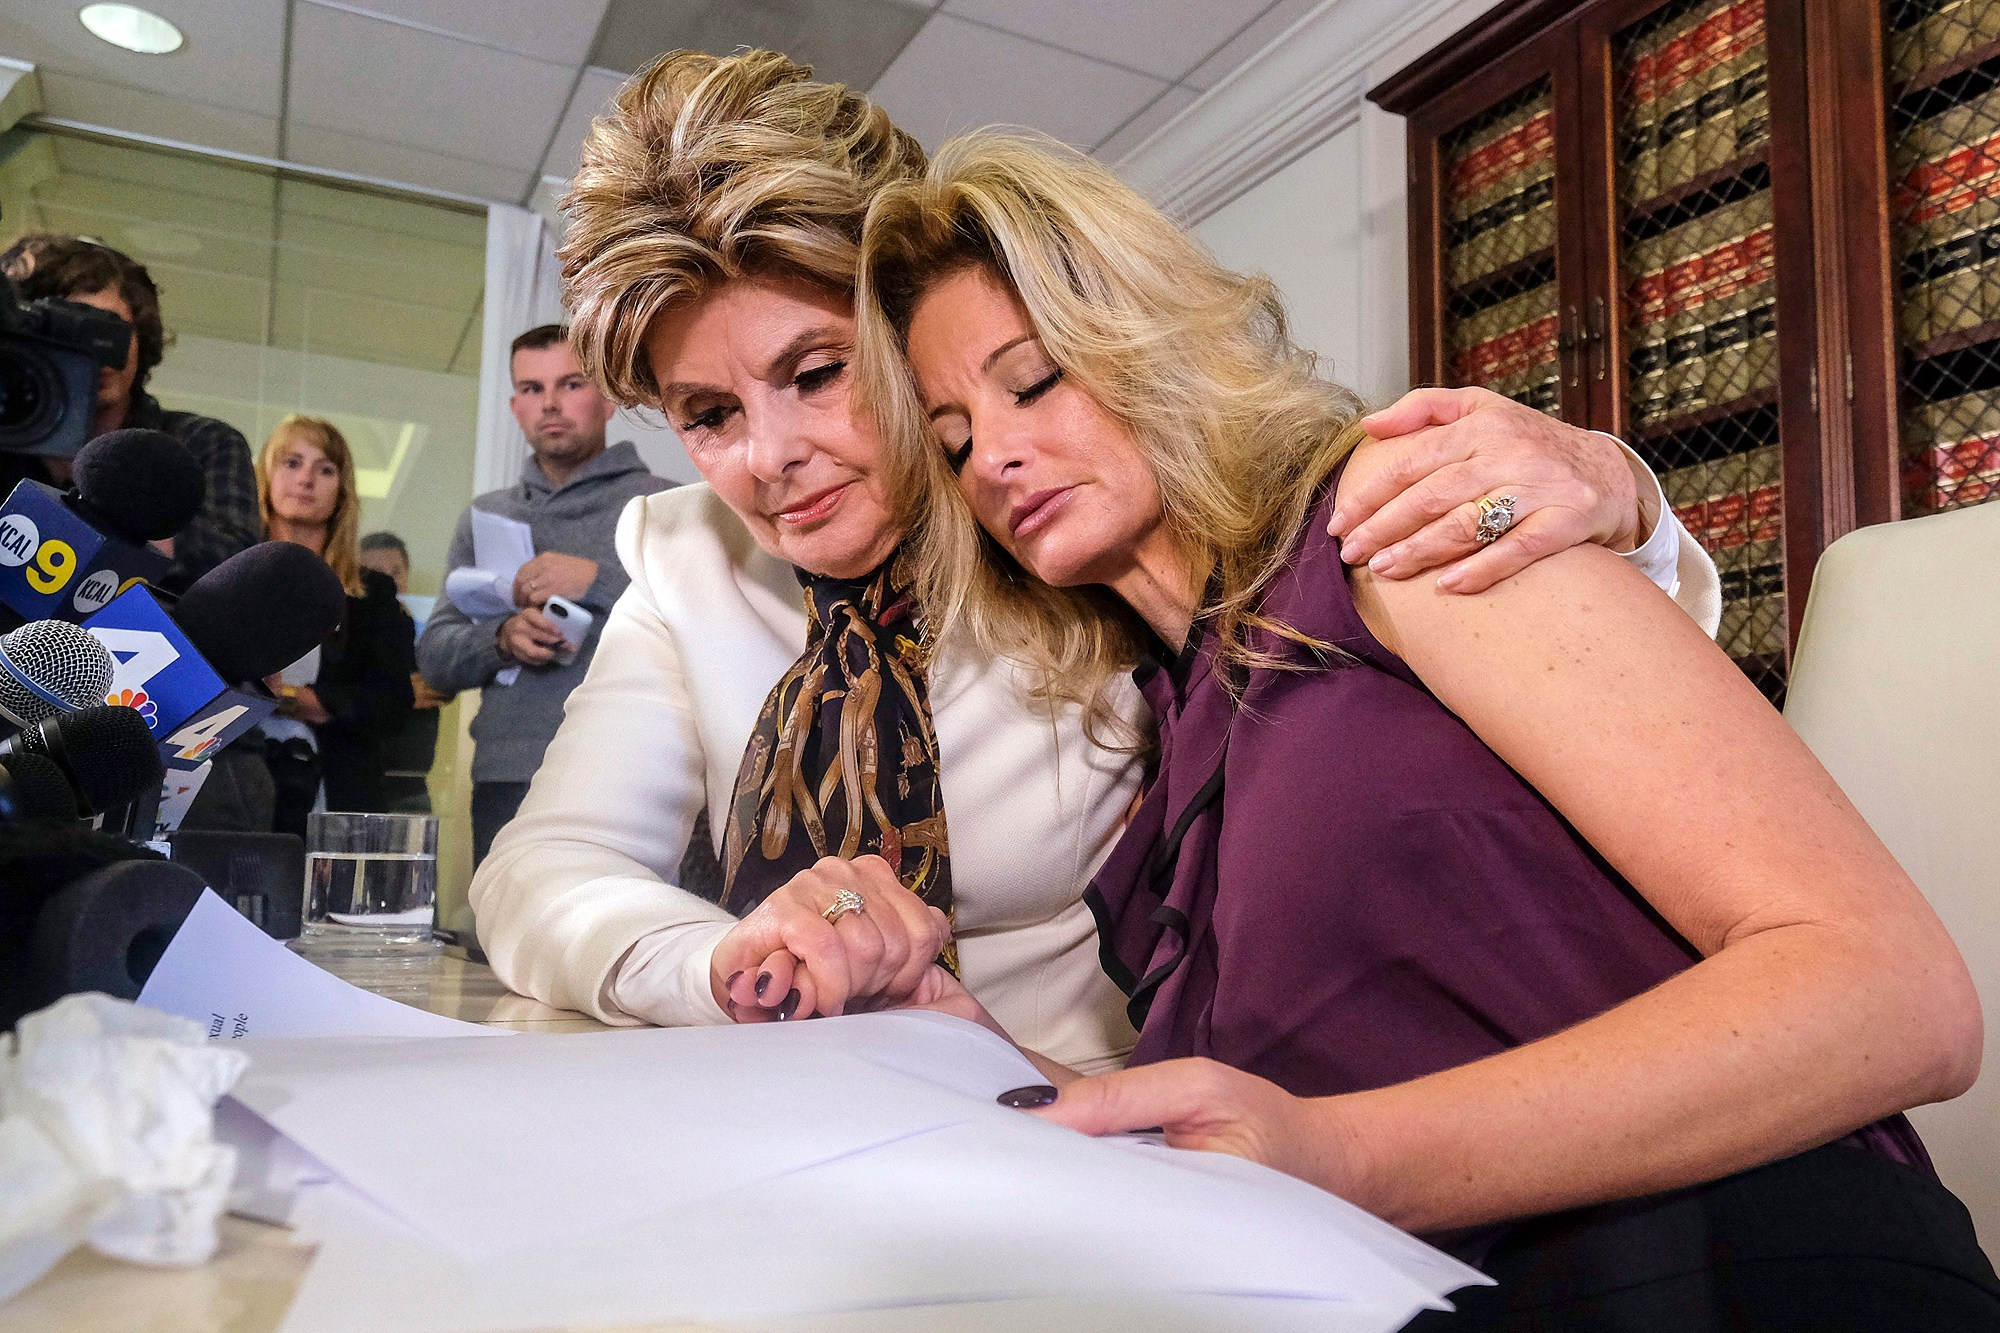 "Attorney Gloria Allred, left, comforts Summer Zervos during a news conference in Los Angeles, Friday Oct. 14, 2016. Zervos, a former contestant on ""The Apprentice"" says Republican presidential candidate Donald Trump made unwanted sexual contact with her at a Beverly Hills hotel in 2007. Zervos is among several women who have made sexual allegations against the Republican nominee. He has strenuously denied them. (AP Photo/Ringo H.W. Chiu)"